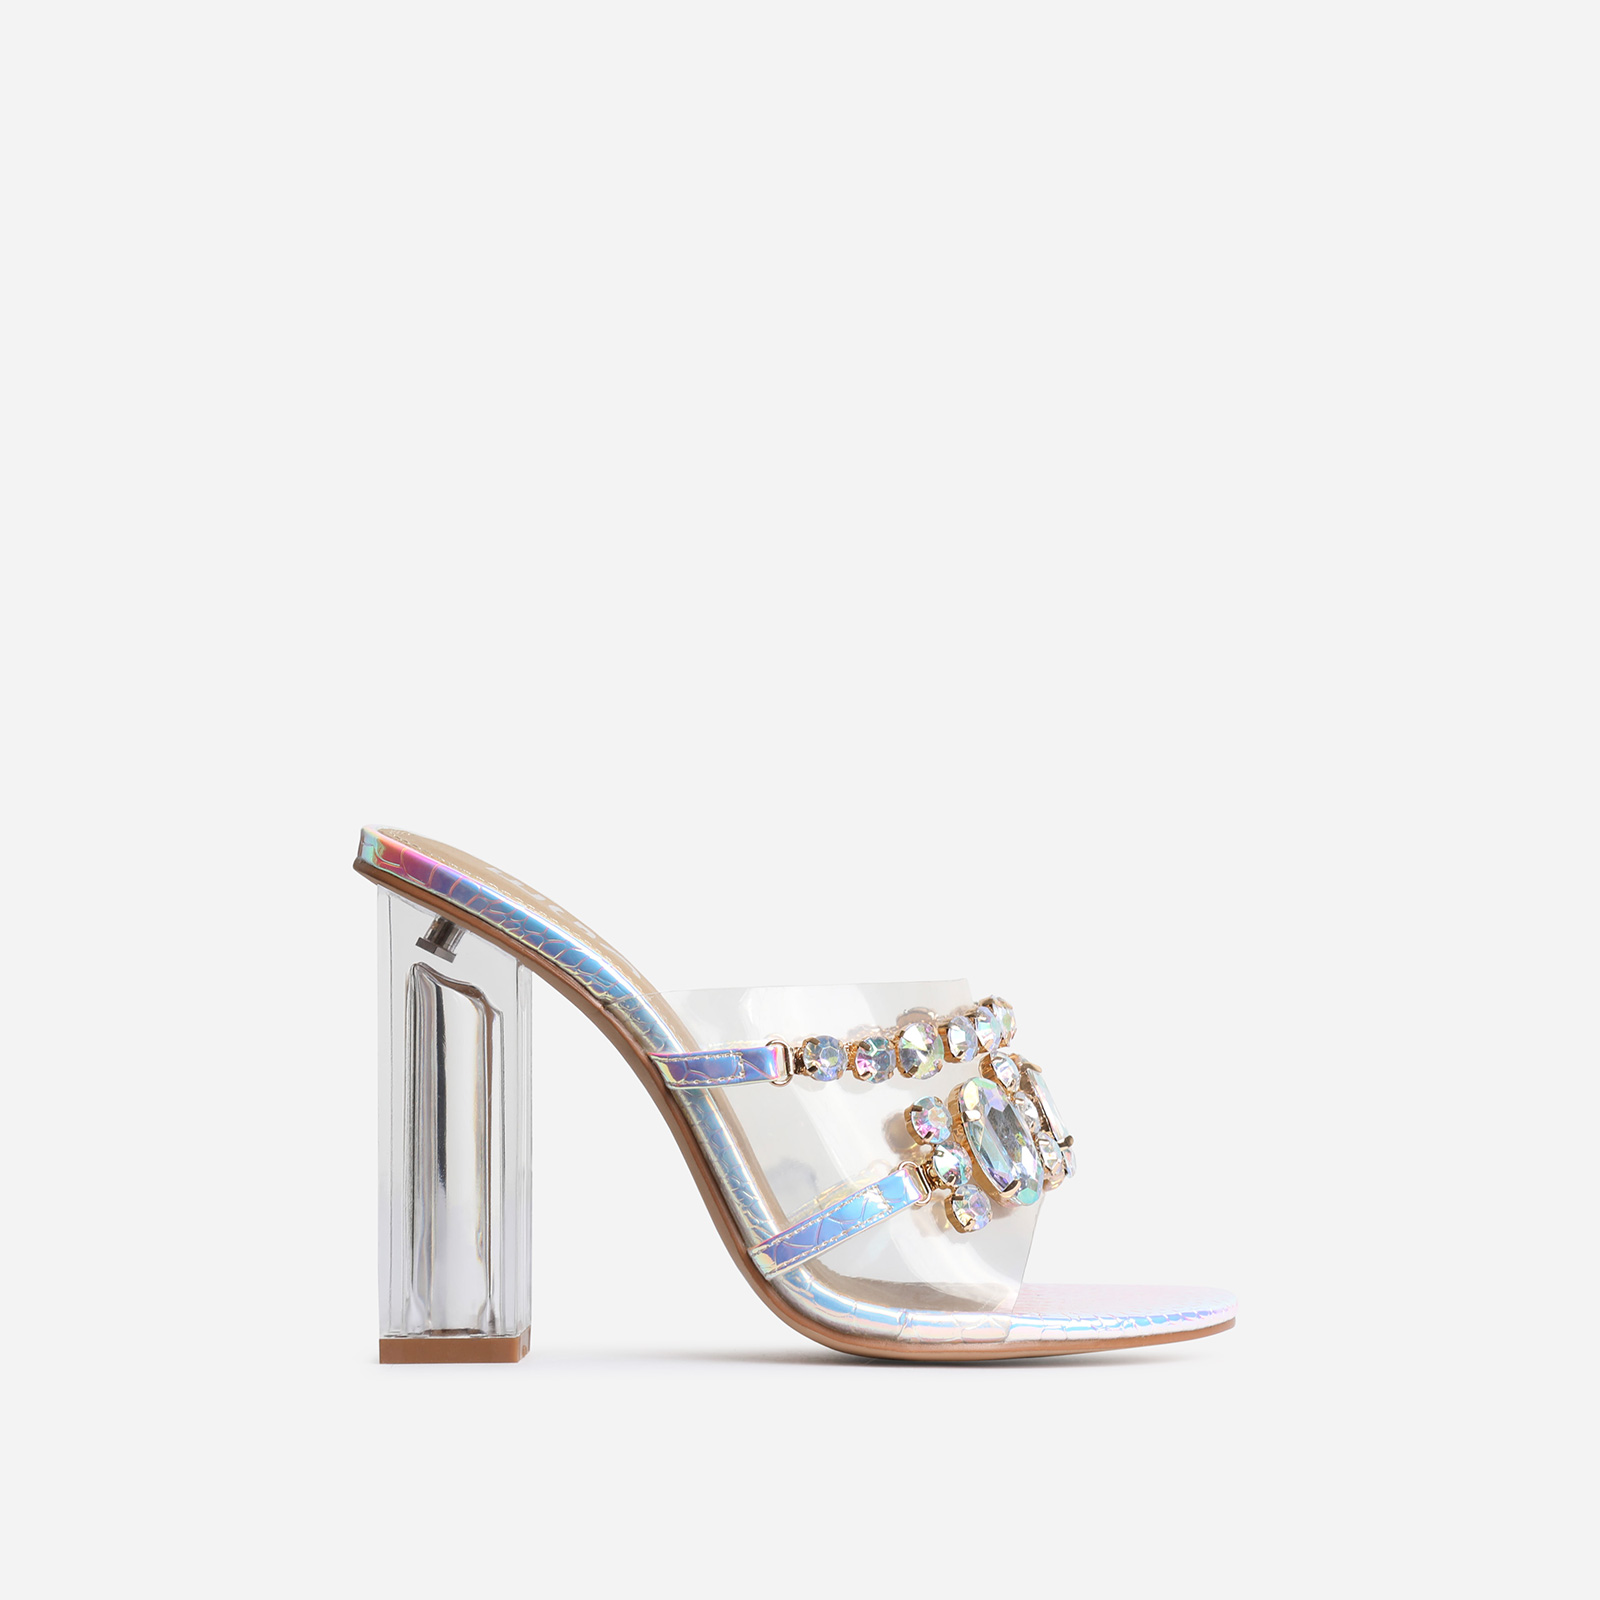 Frost Gem Embellished Perspex Peep Toe Block Heel Mule In Silver Holographic Snake Print Faux Leather